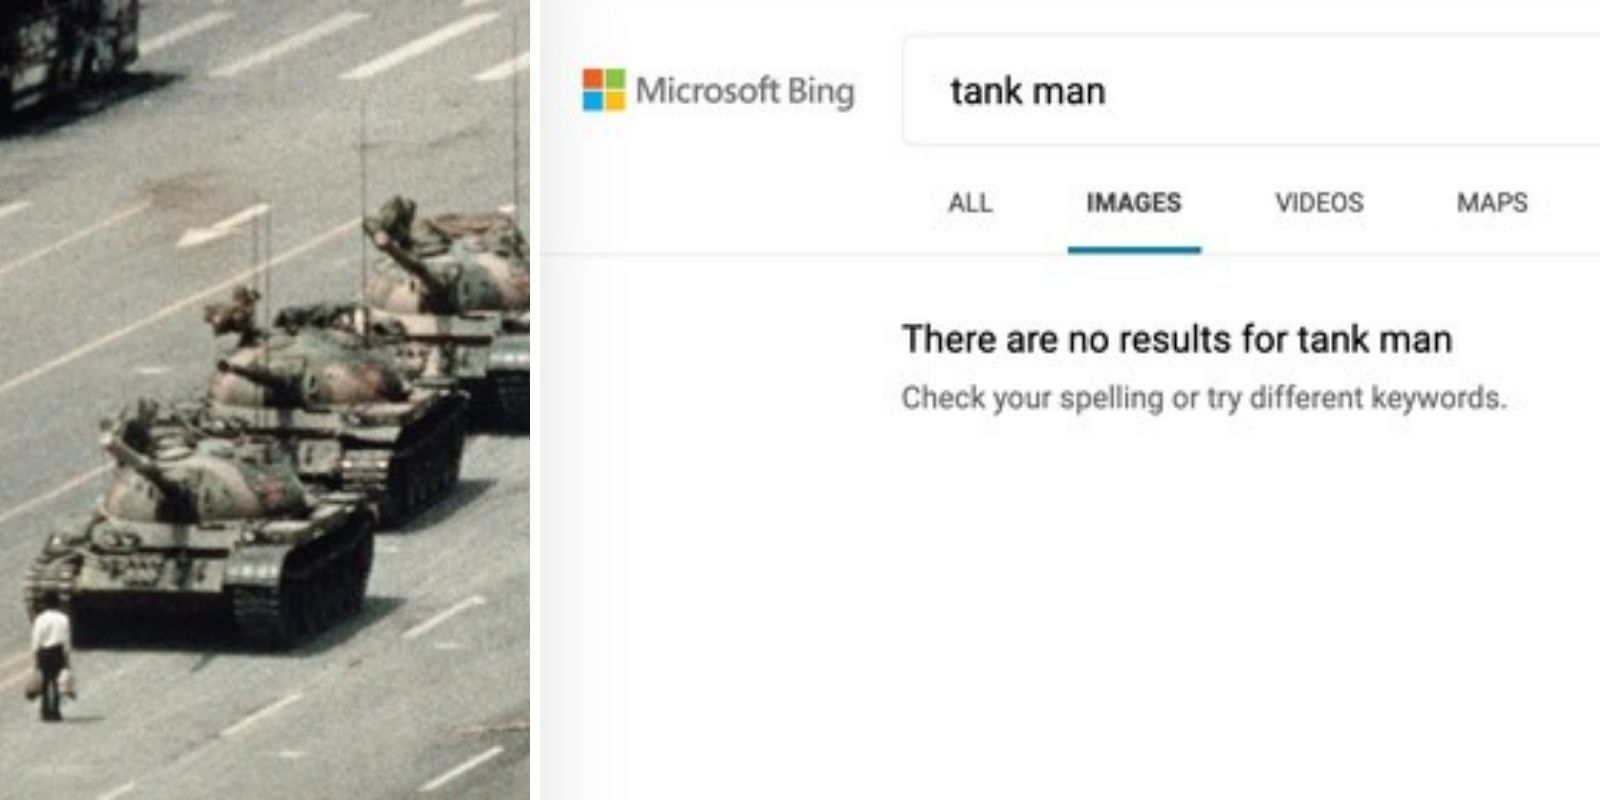 Microsoft censors image search results for Tiananmen Square 'tank man'